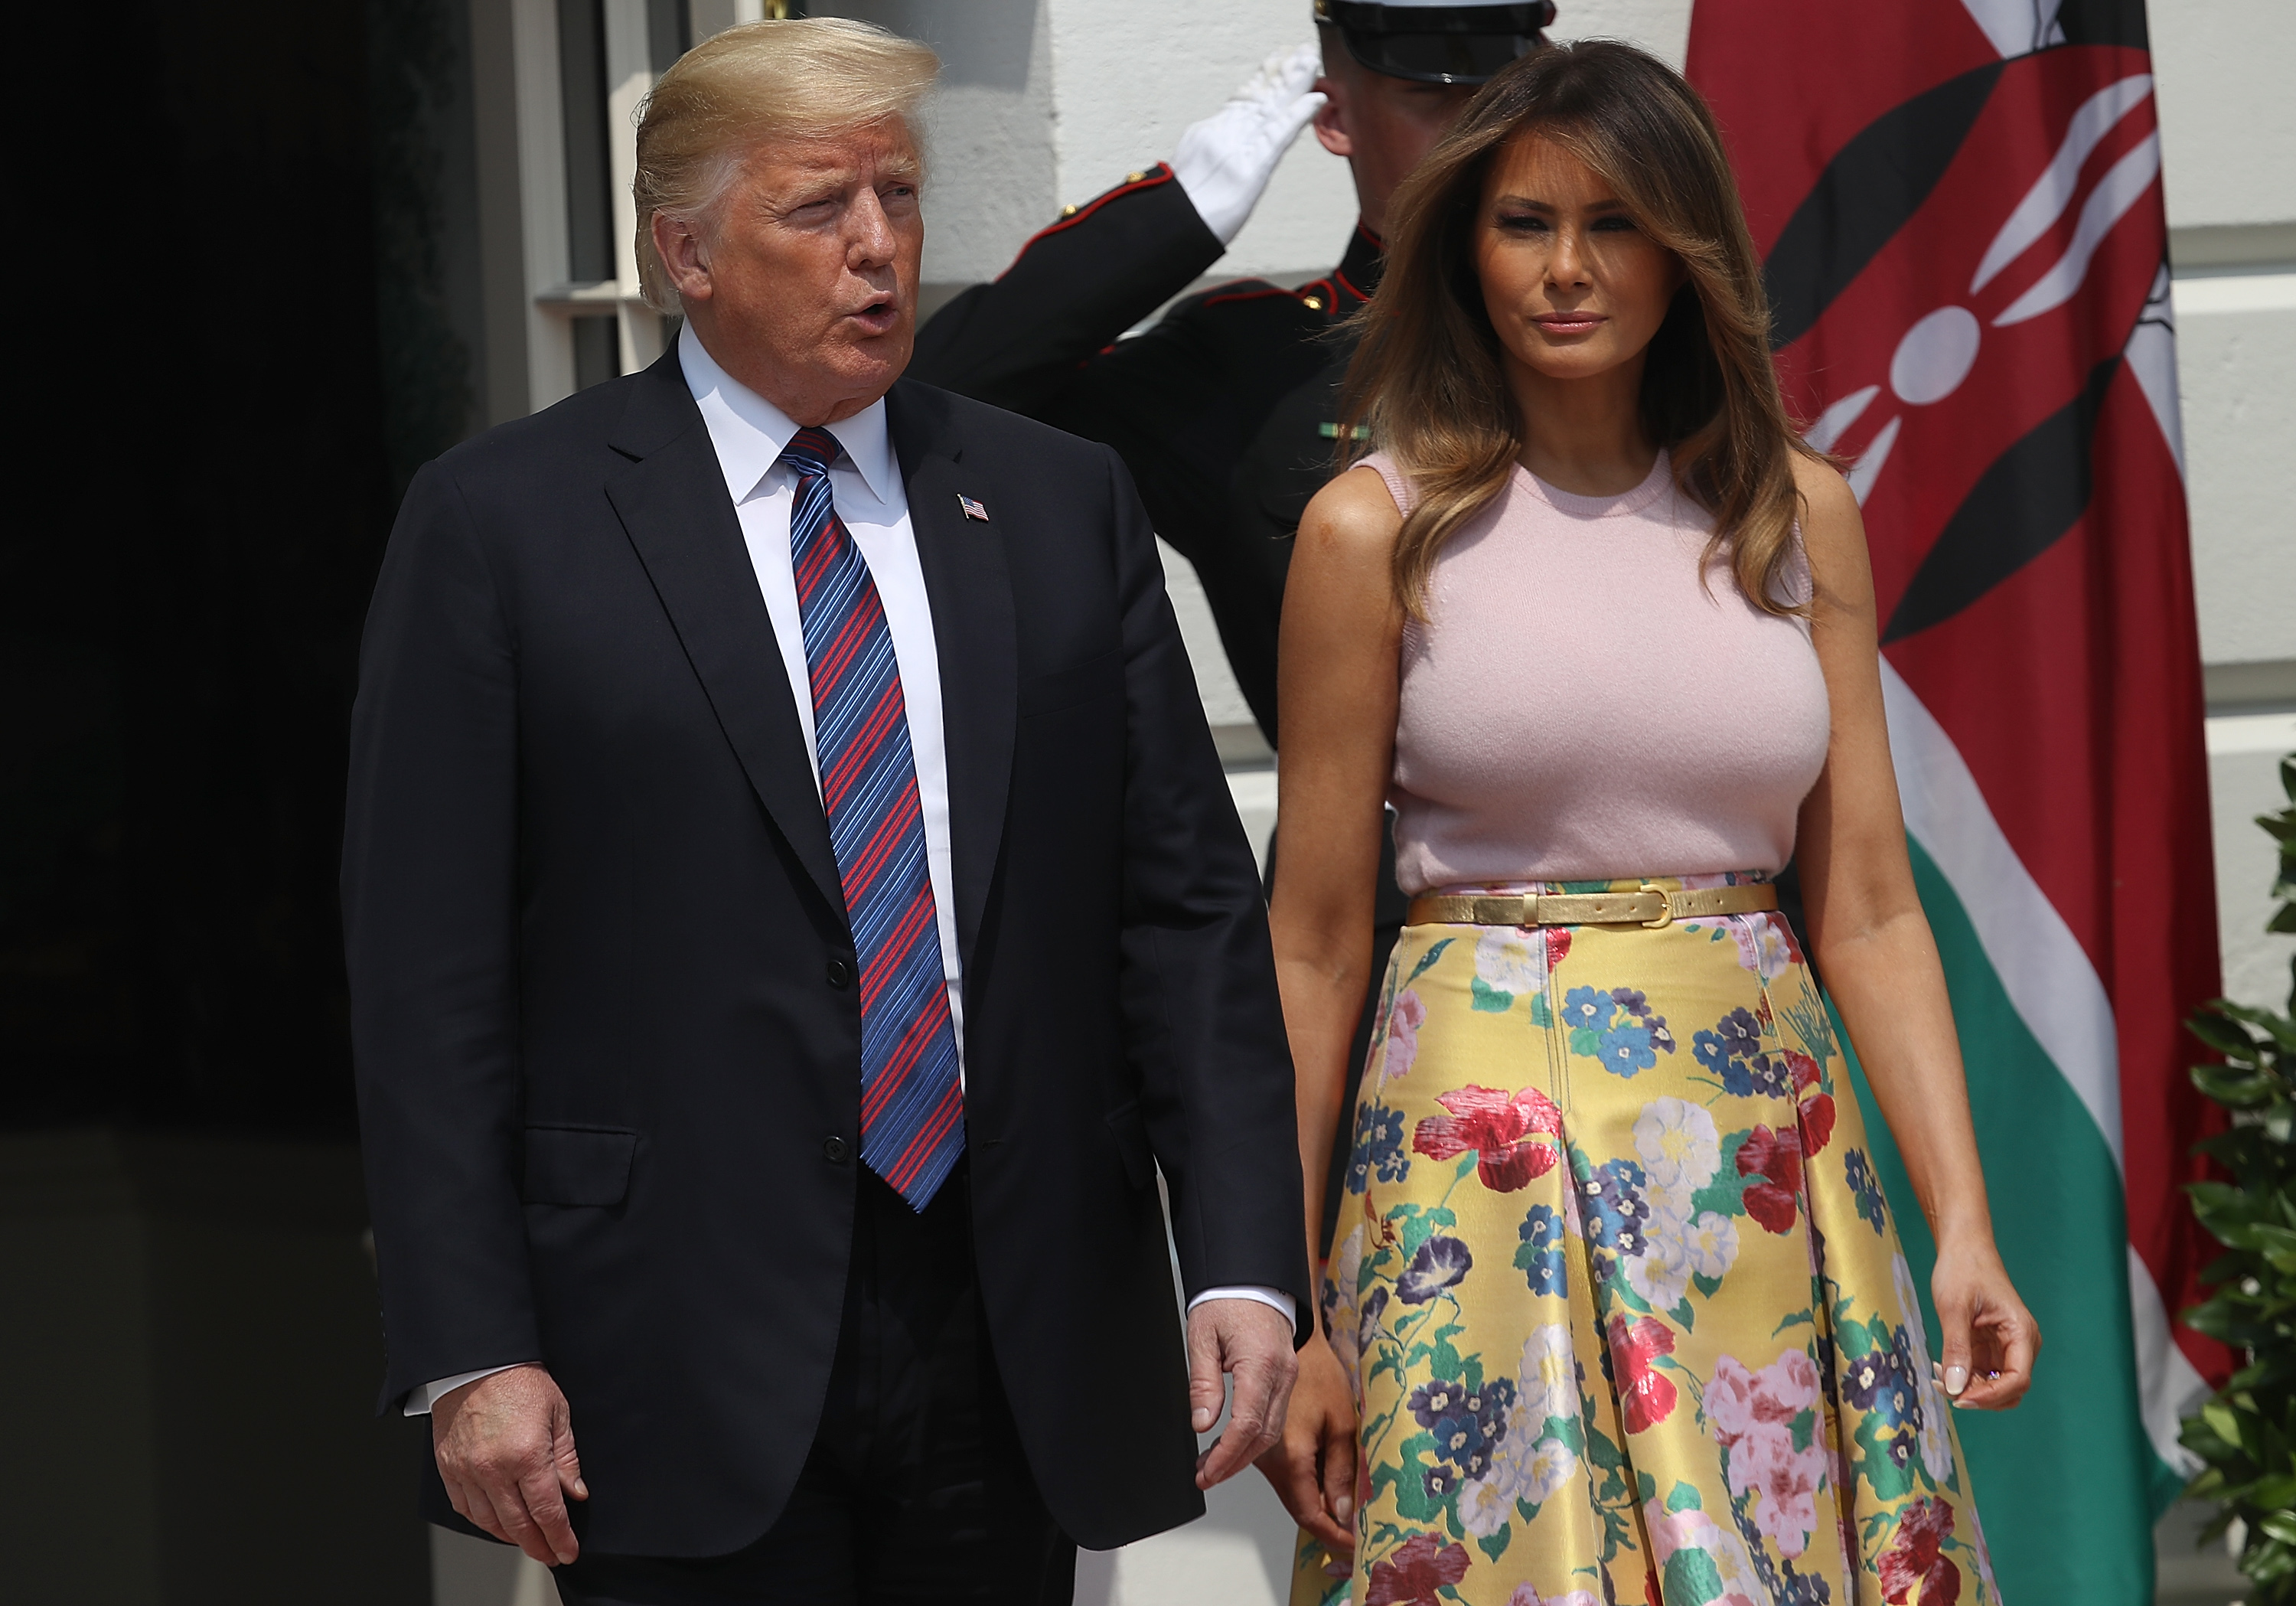 U.S. President Donald Trump and first lady Melania Trump walk from the White House to welcome Kenyan President Uhuru Muigai Kenyatta August 27, 2018 in Washington, DC.